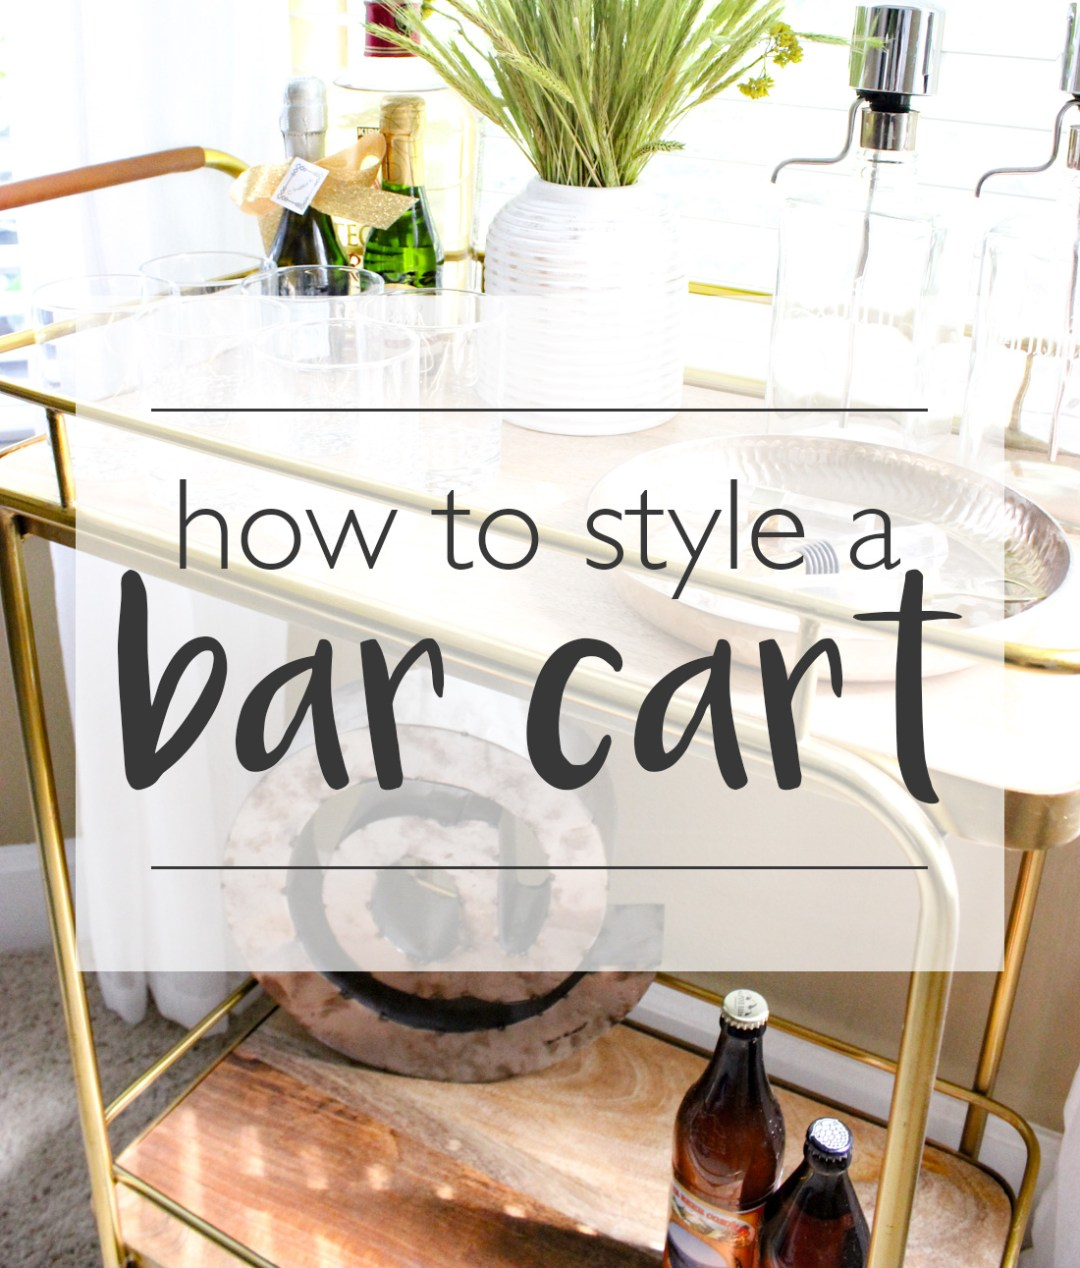 How to Style a Bar Cart | Just Peachy Blog